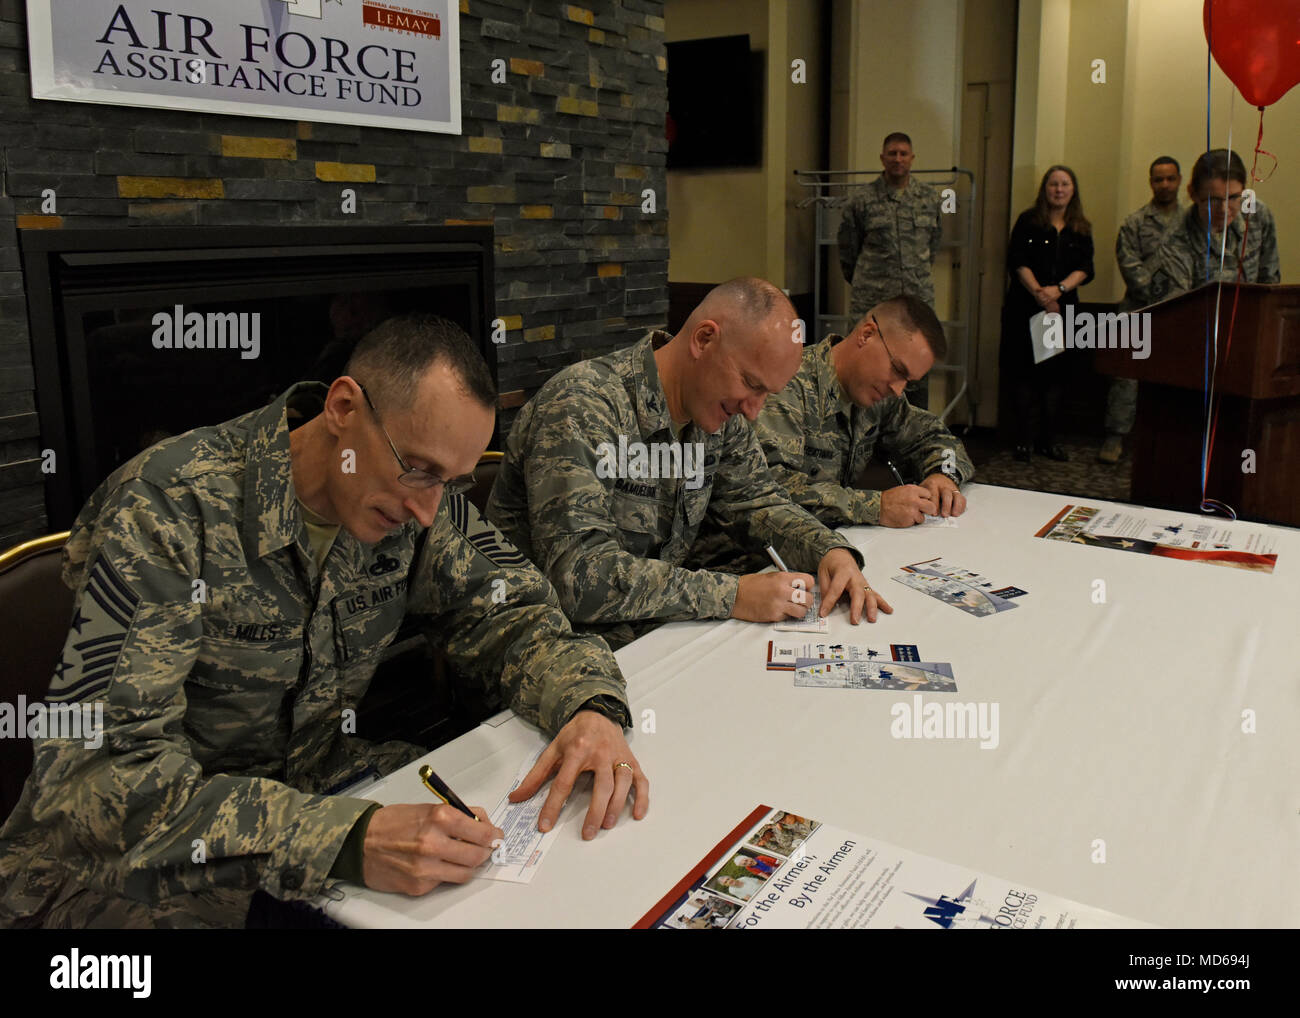 (from left) Chief Master Sgt. Lee Mills, 92nd Air Refueling Wing command chief, Col. Ryan Samuelson, 92nd ARW commander, and Col. J. Scot Heathman, 92nd ARW vice commander, make the first donations during the Air Force Assistance Fund kick-off breakfast at Fairchild Air Force Base, Washington, March 26, 2018. The Air Force Aid Society directs the AFAF and works to support and enhance the U.S. Air Force mission by providing emergency financial assistance, education support and community programs to Airmen. (U.S. Air Force photo/Airman 1st Class Jesenia Landaverde) - Stock Image